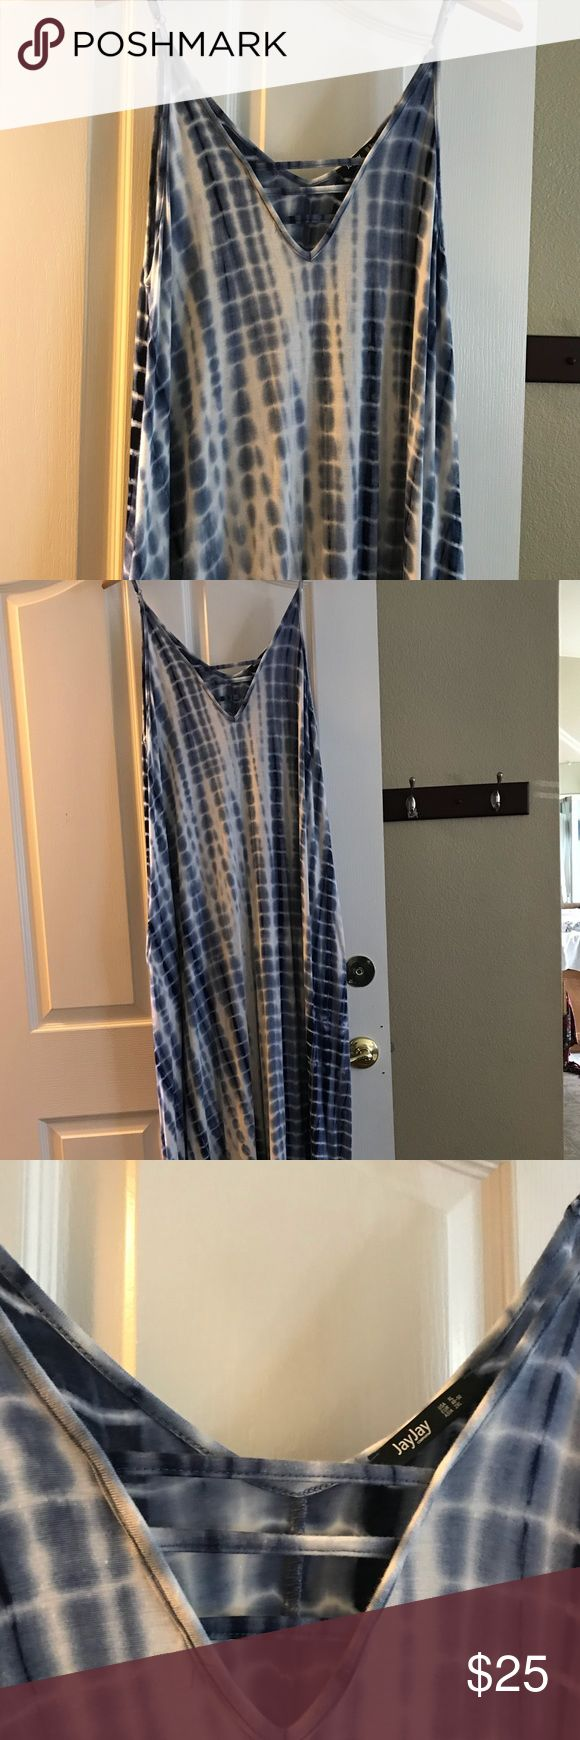 JayJay blue and white Maxi Dress Very pretty white/blue tank maxi dress. This dress is oversized and stretchy, very comfortable. Never worn. Dresses Maxi